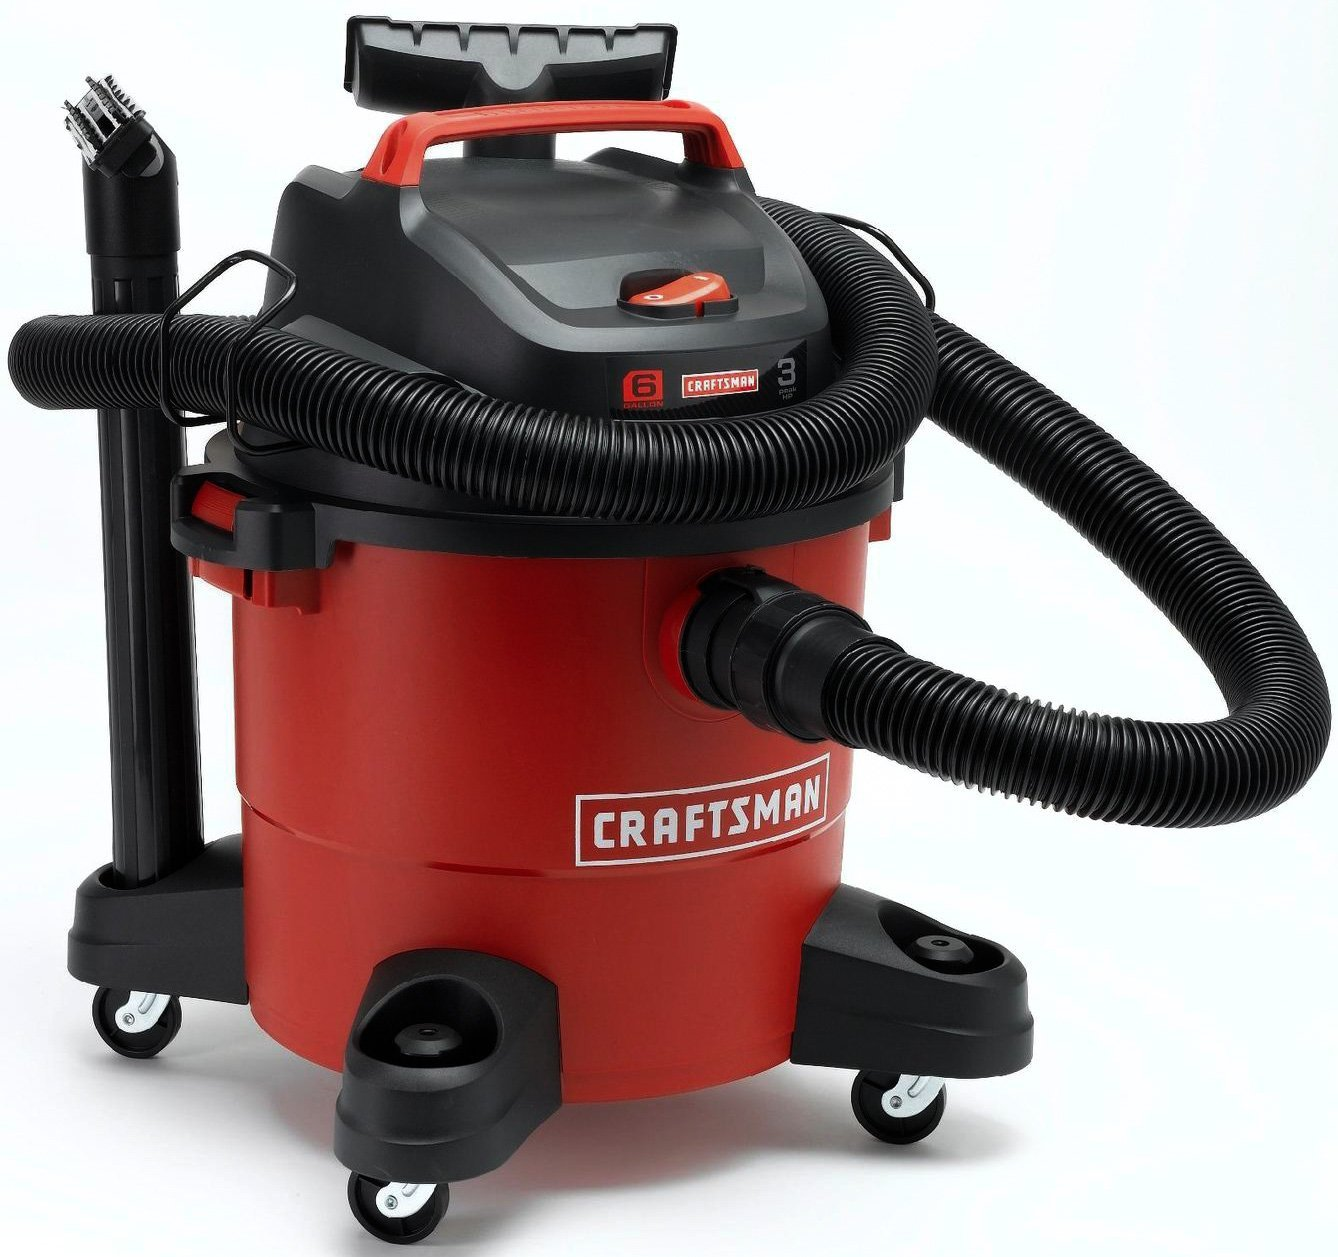 Craftsman 12004 6 Gallon Wet Dry Vac